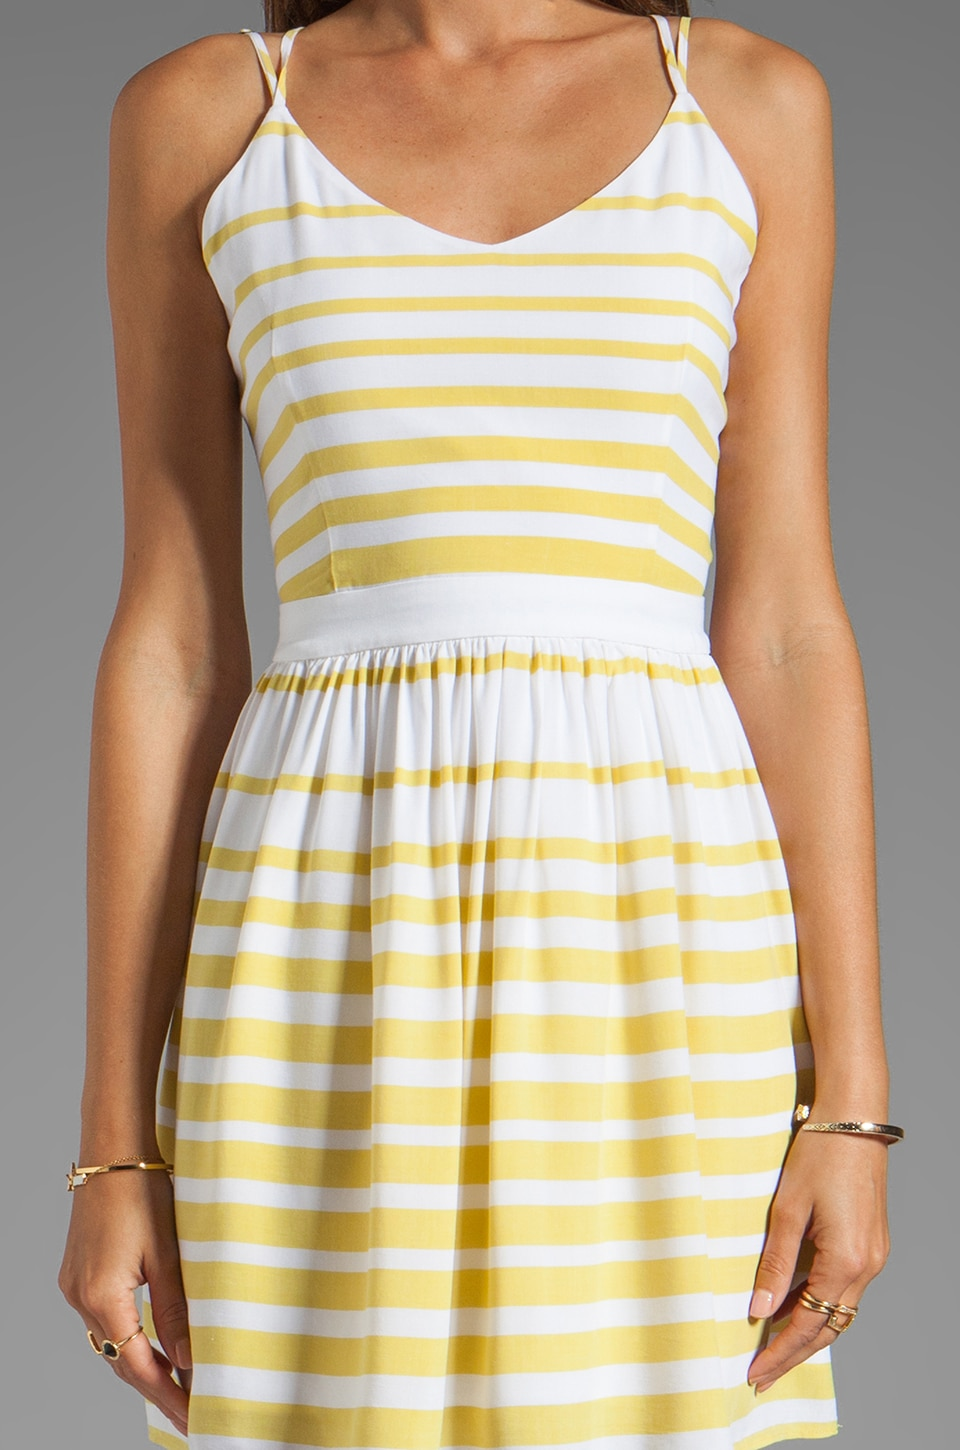 Dolce Vita Hanni Ascending Stripe Mini Dress in Yellow/White